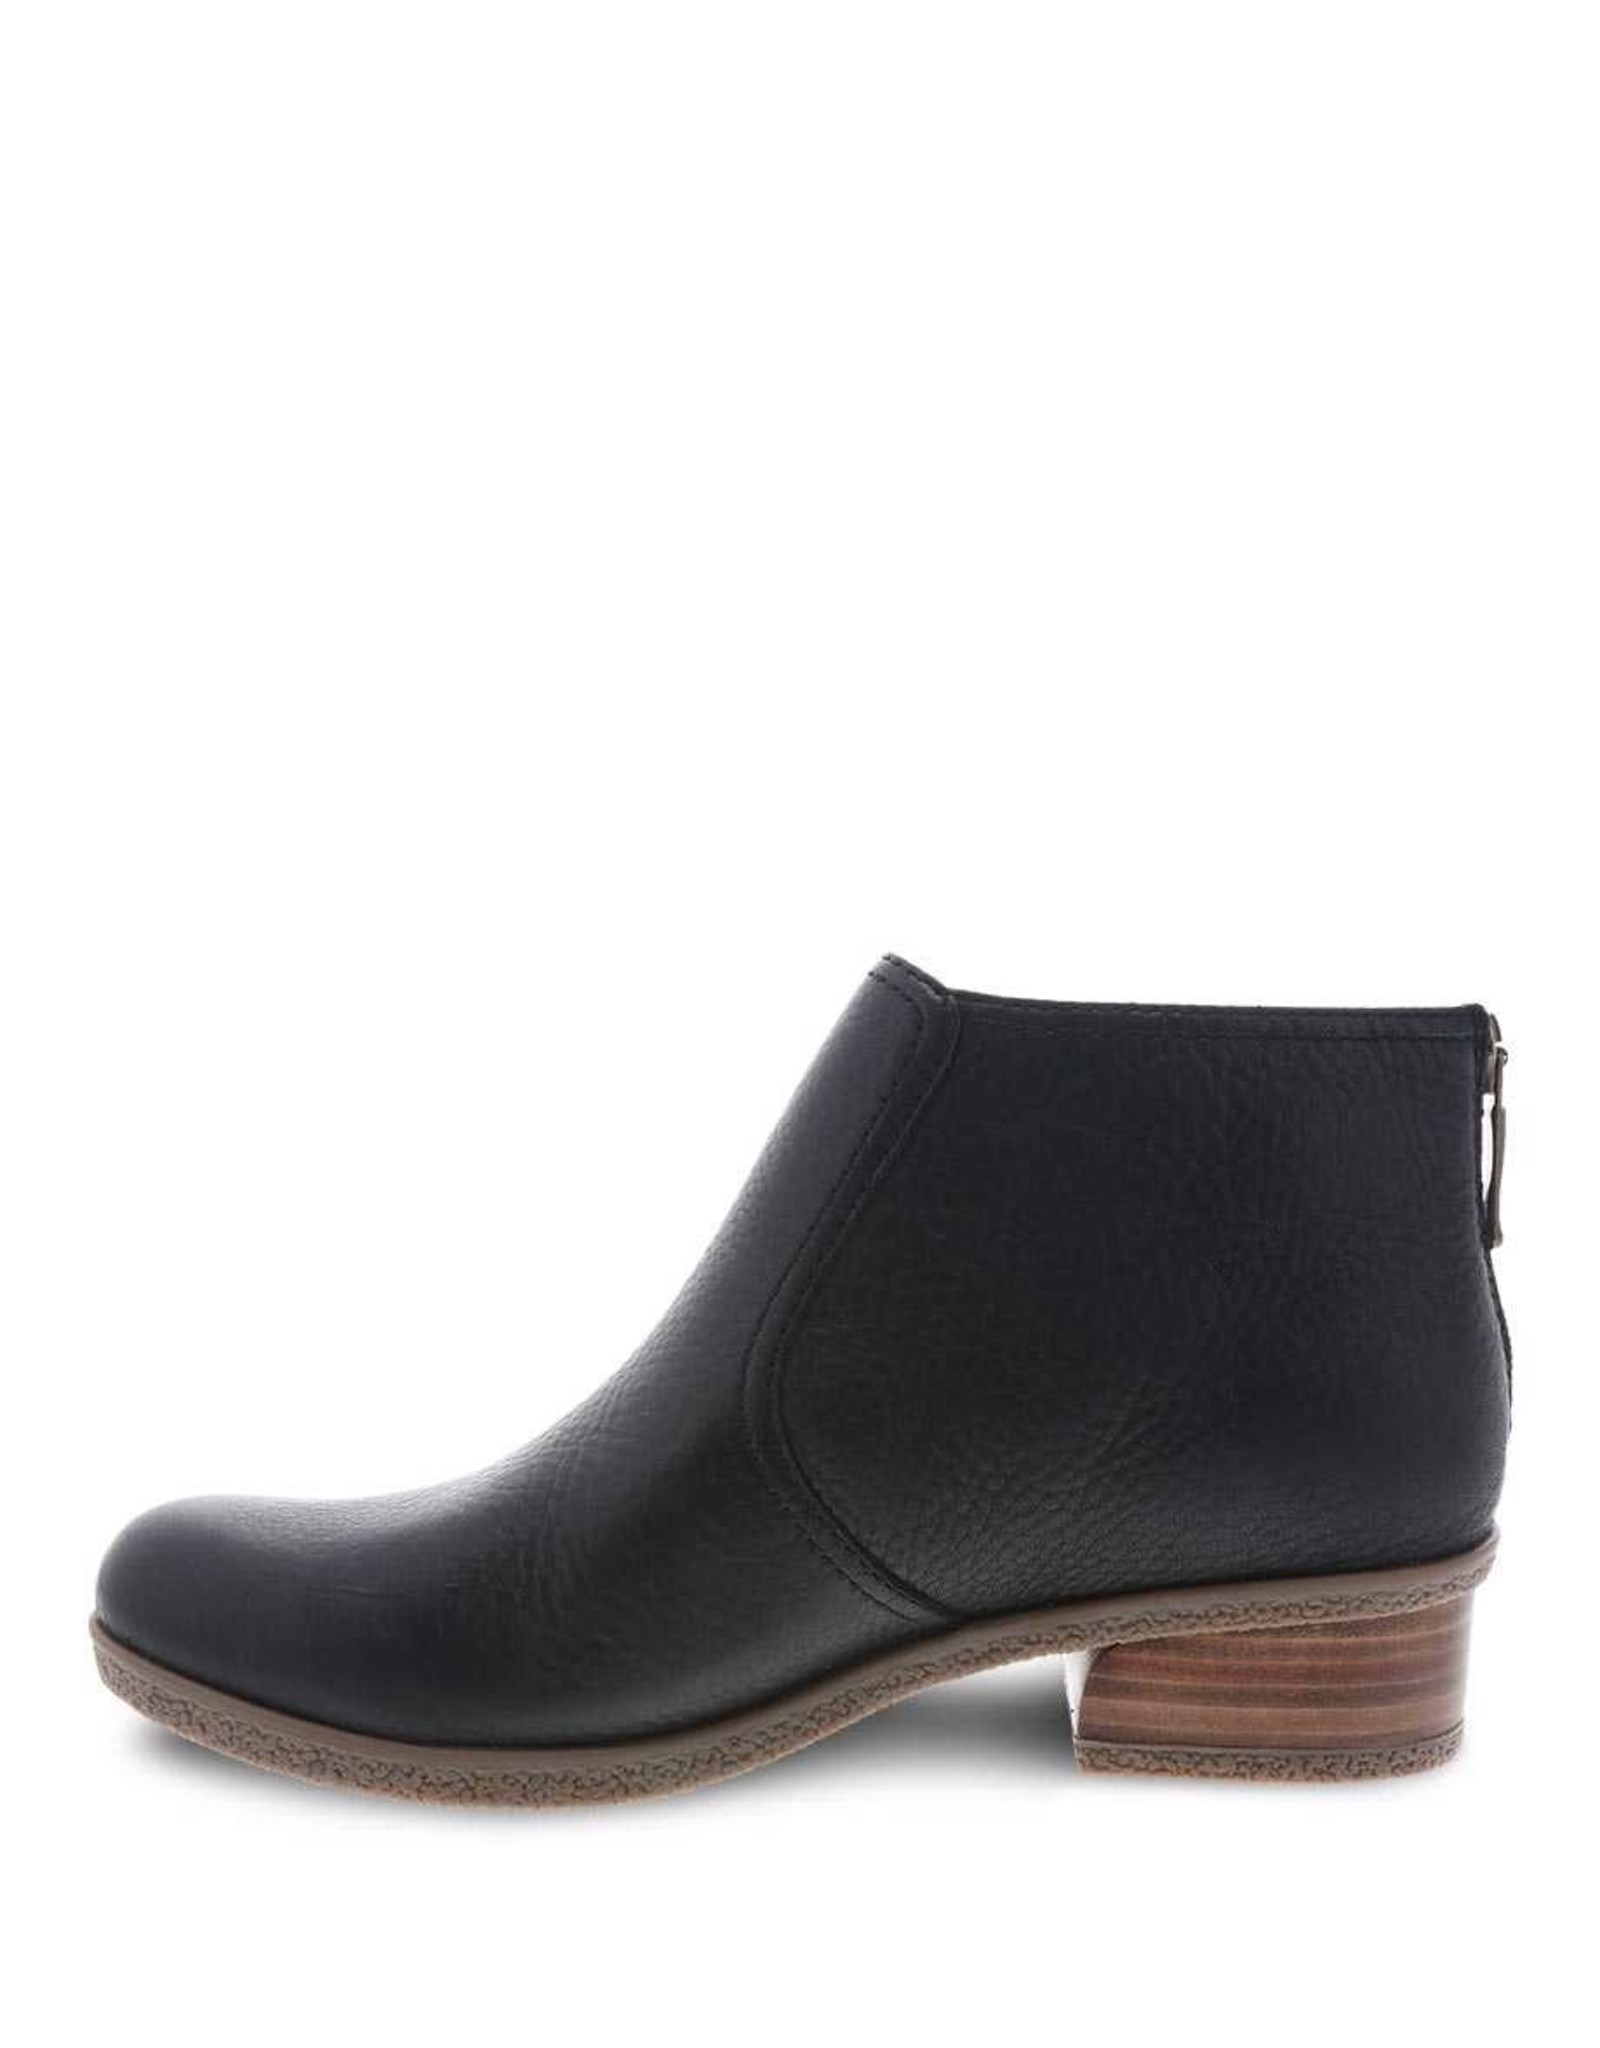 DANSKO DANSKO BECKI BOOT-BLACK WATERPROOF TUMBLED